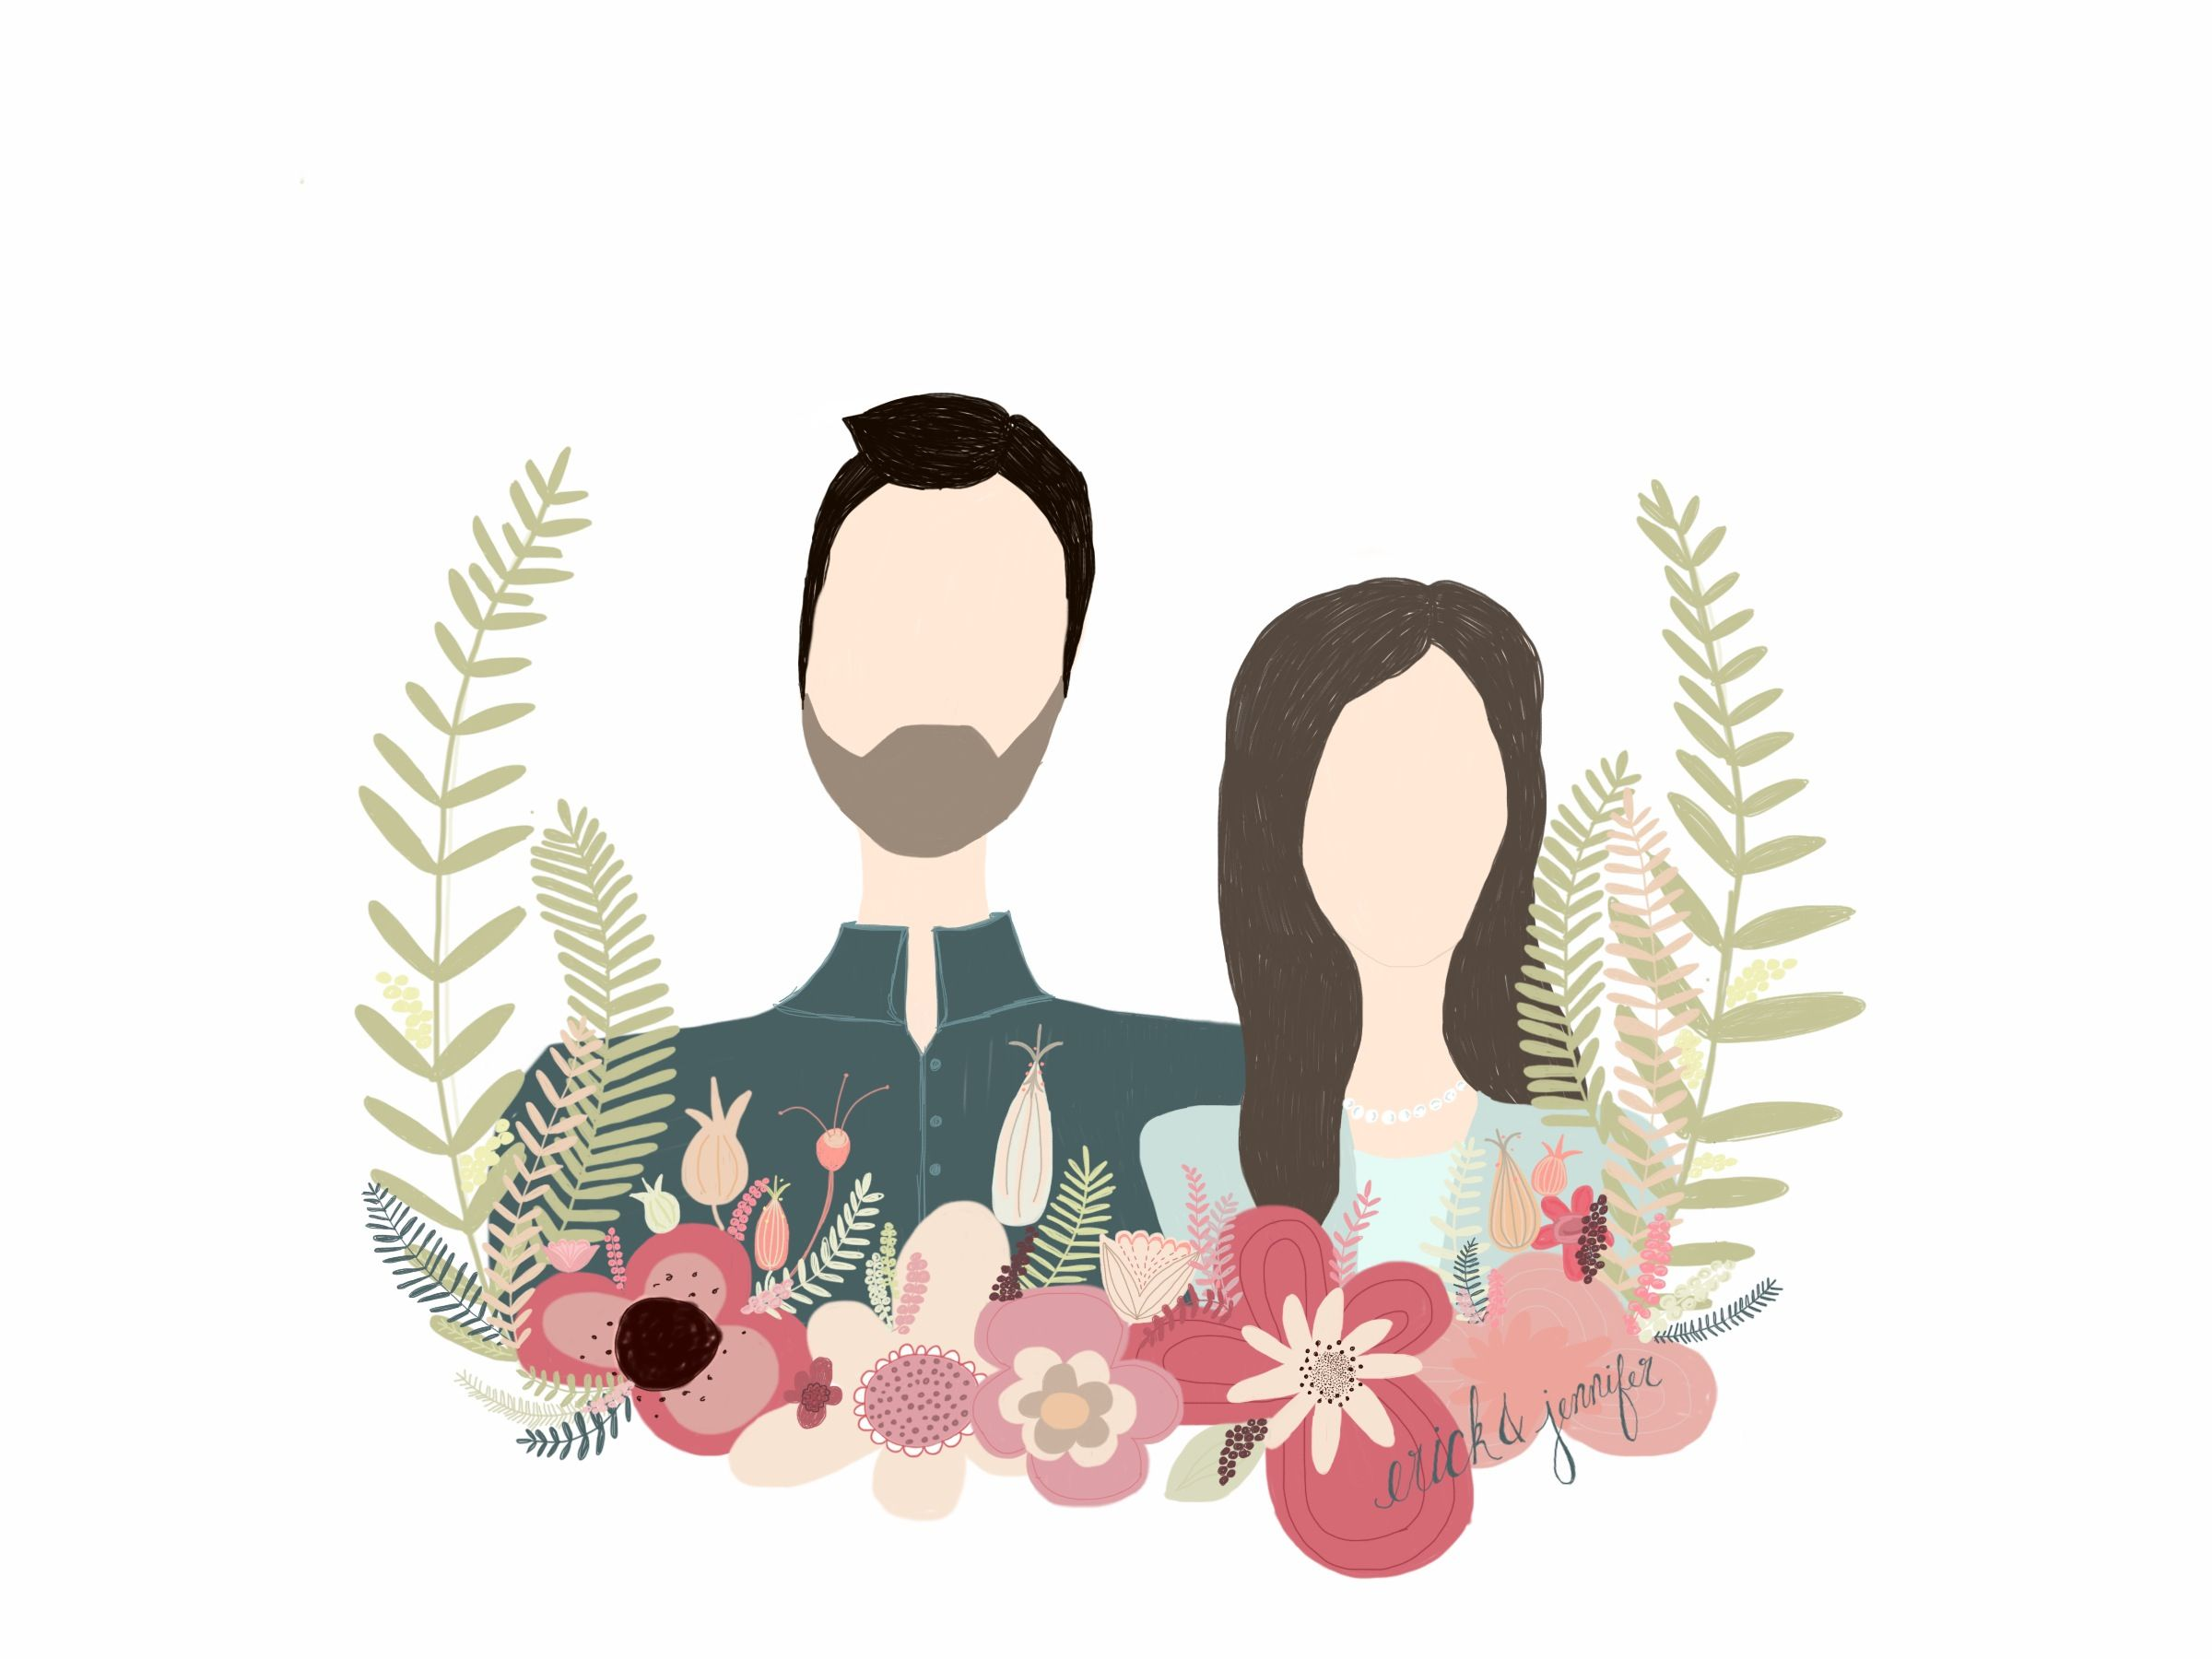 Couple illustration by Maddox and Klaus